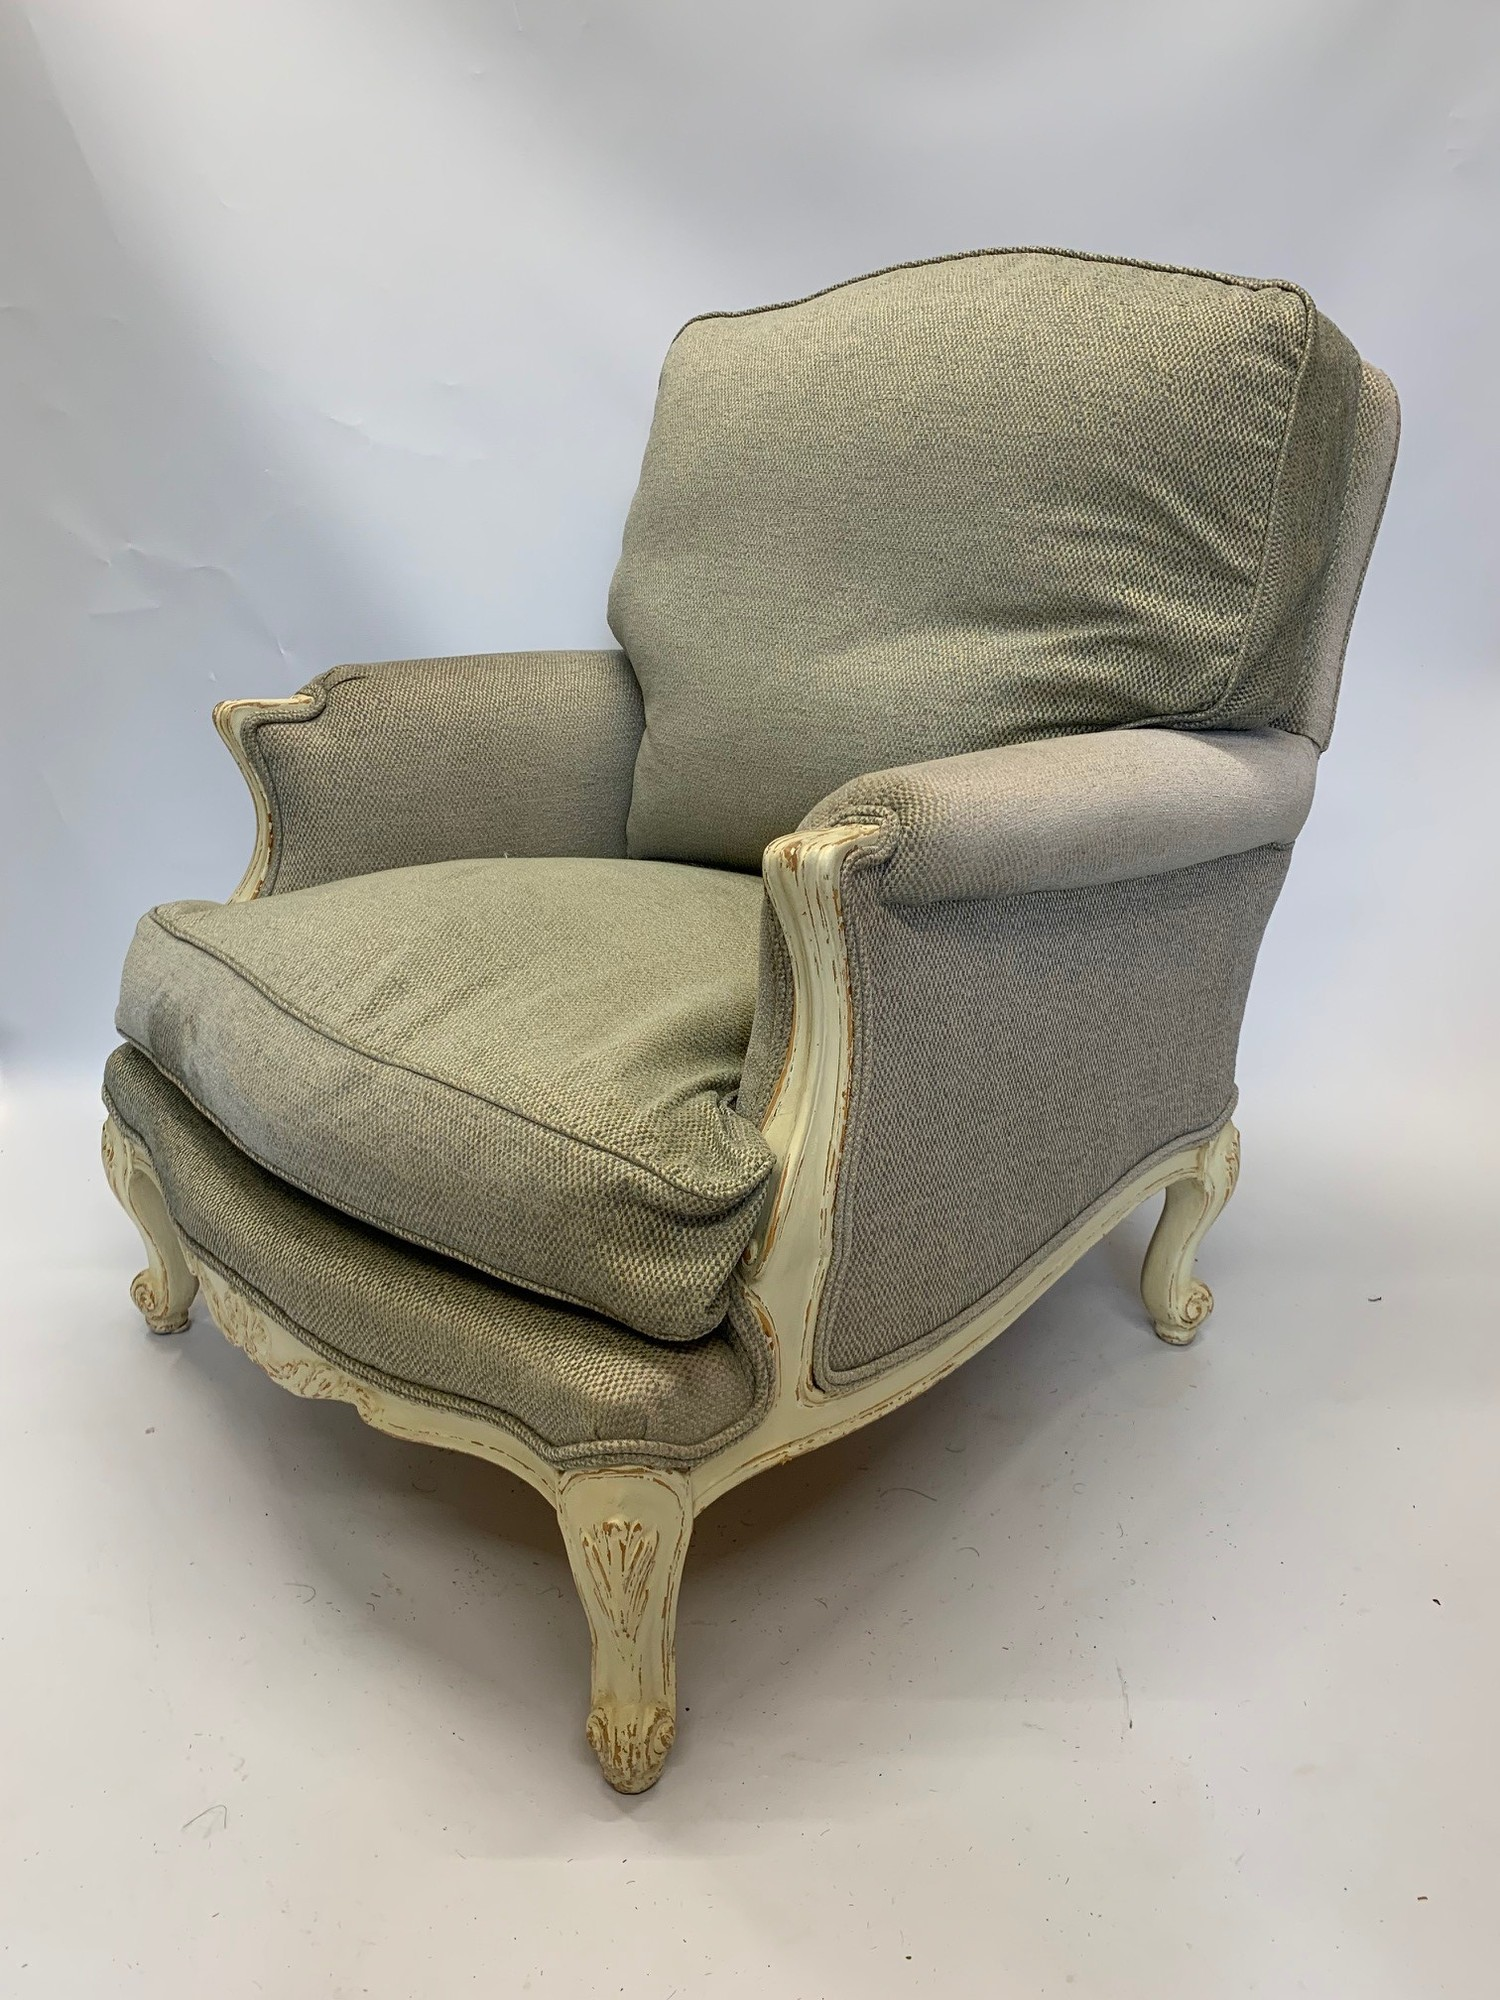 A PAIR OF DECORATIVE LOUIS XV DESIGN PAINTED CARVED WOOD AND UPHOLSTERED ARMCHAIRS Raised on - Image 3 of 4